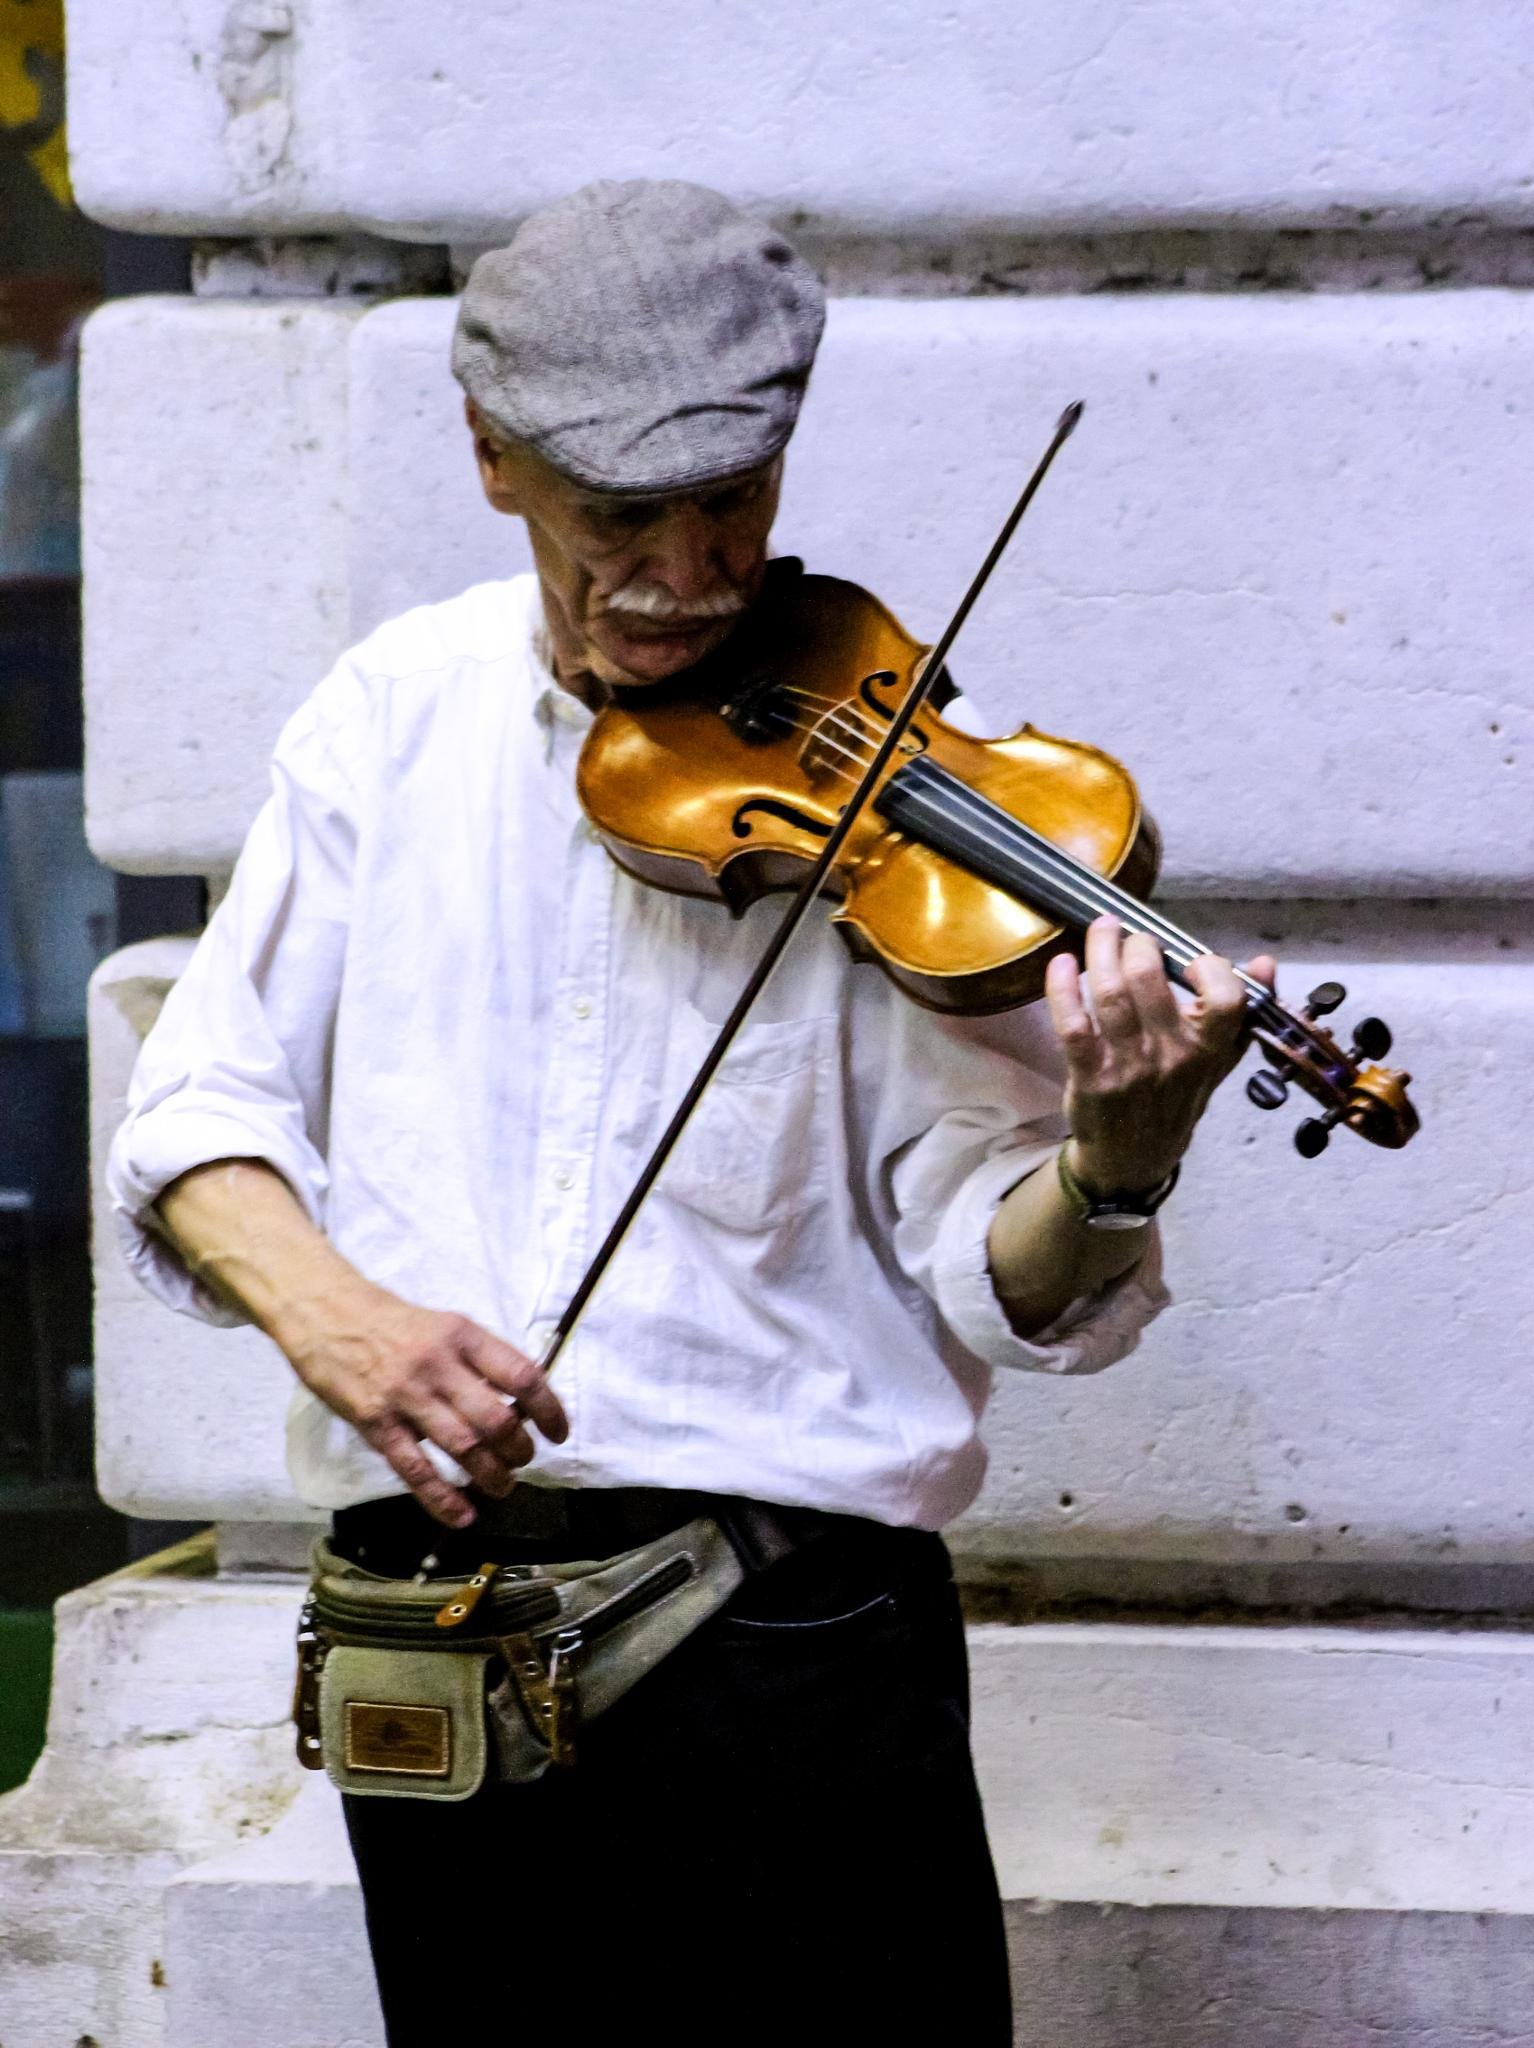 Violin in the Park by Curtis Egan